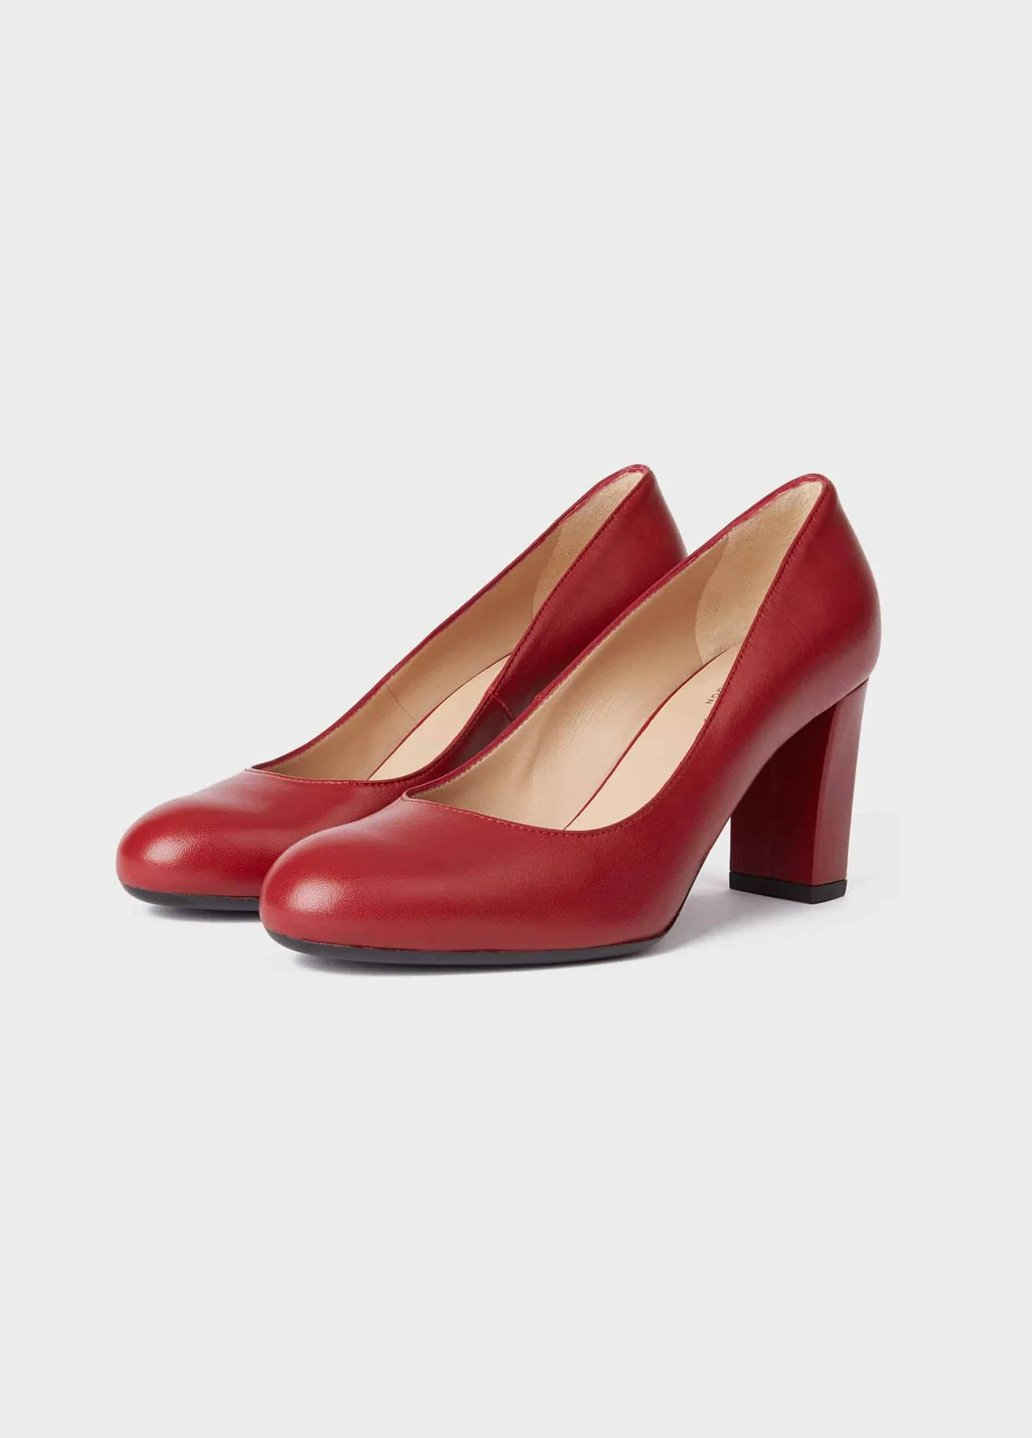 Hobbs Sonia court shoe. The perfect heel for wedding guest dresses, mother of the bride outfits or simply workwear.